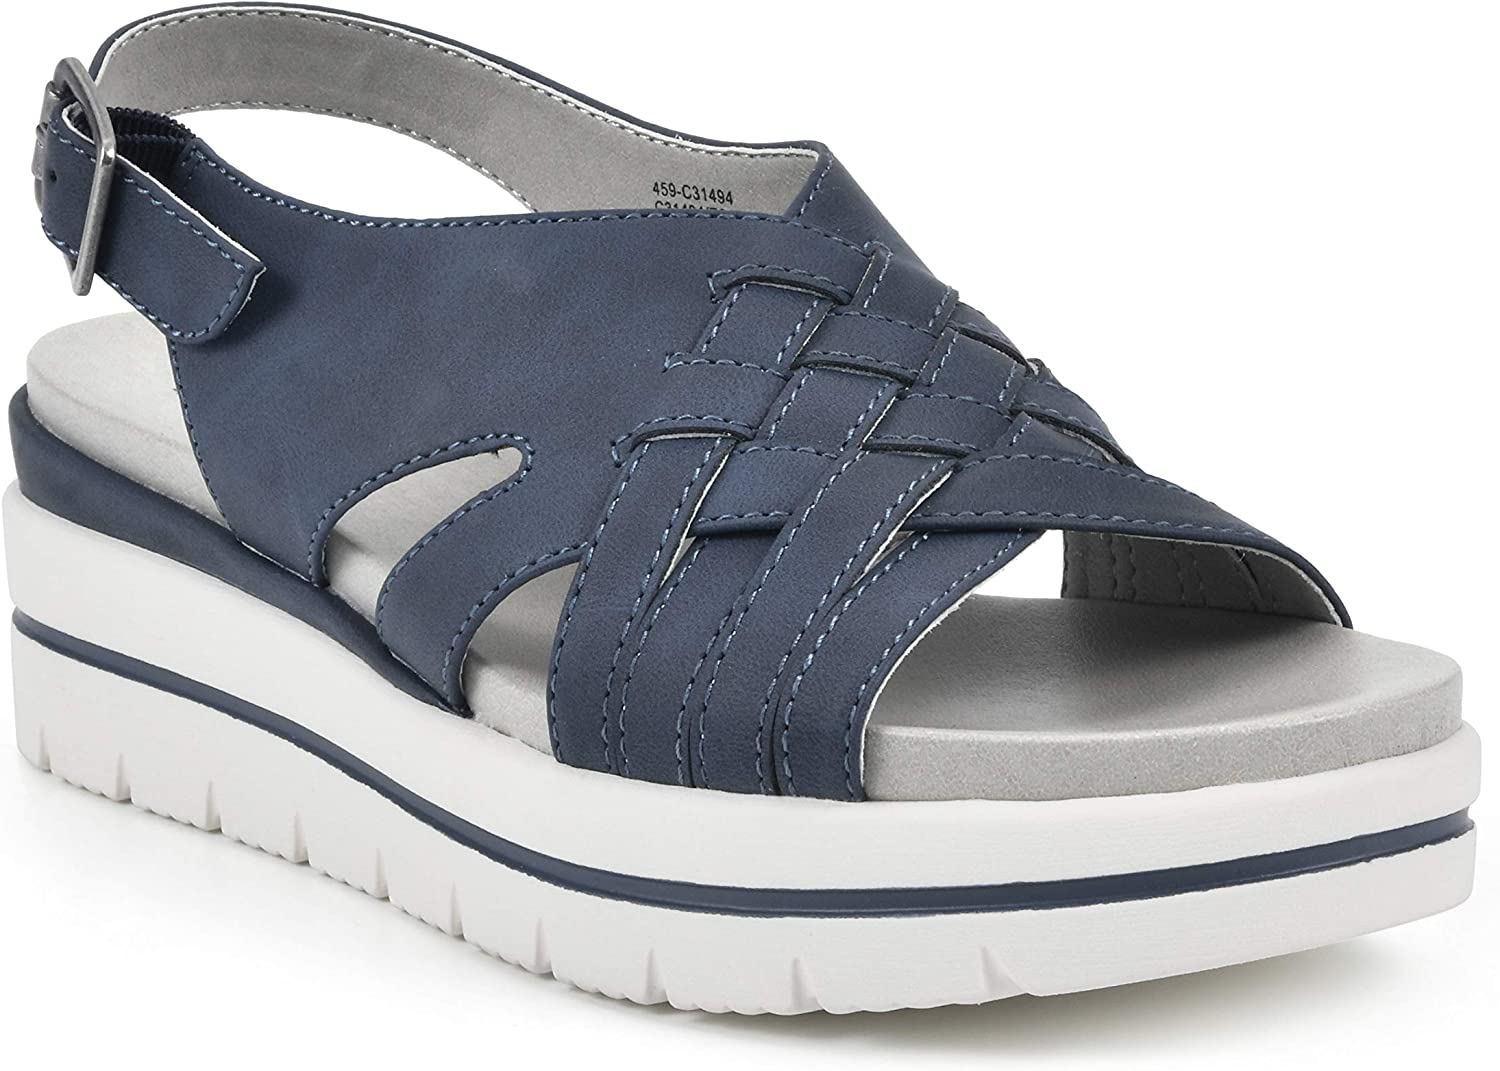 CLIFFS BY WHITE Over item handling MOUNTAIN Platform National products Sandal Women's Toleen